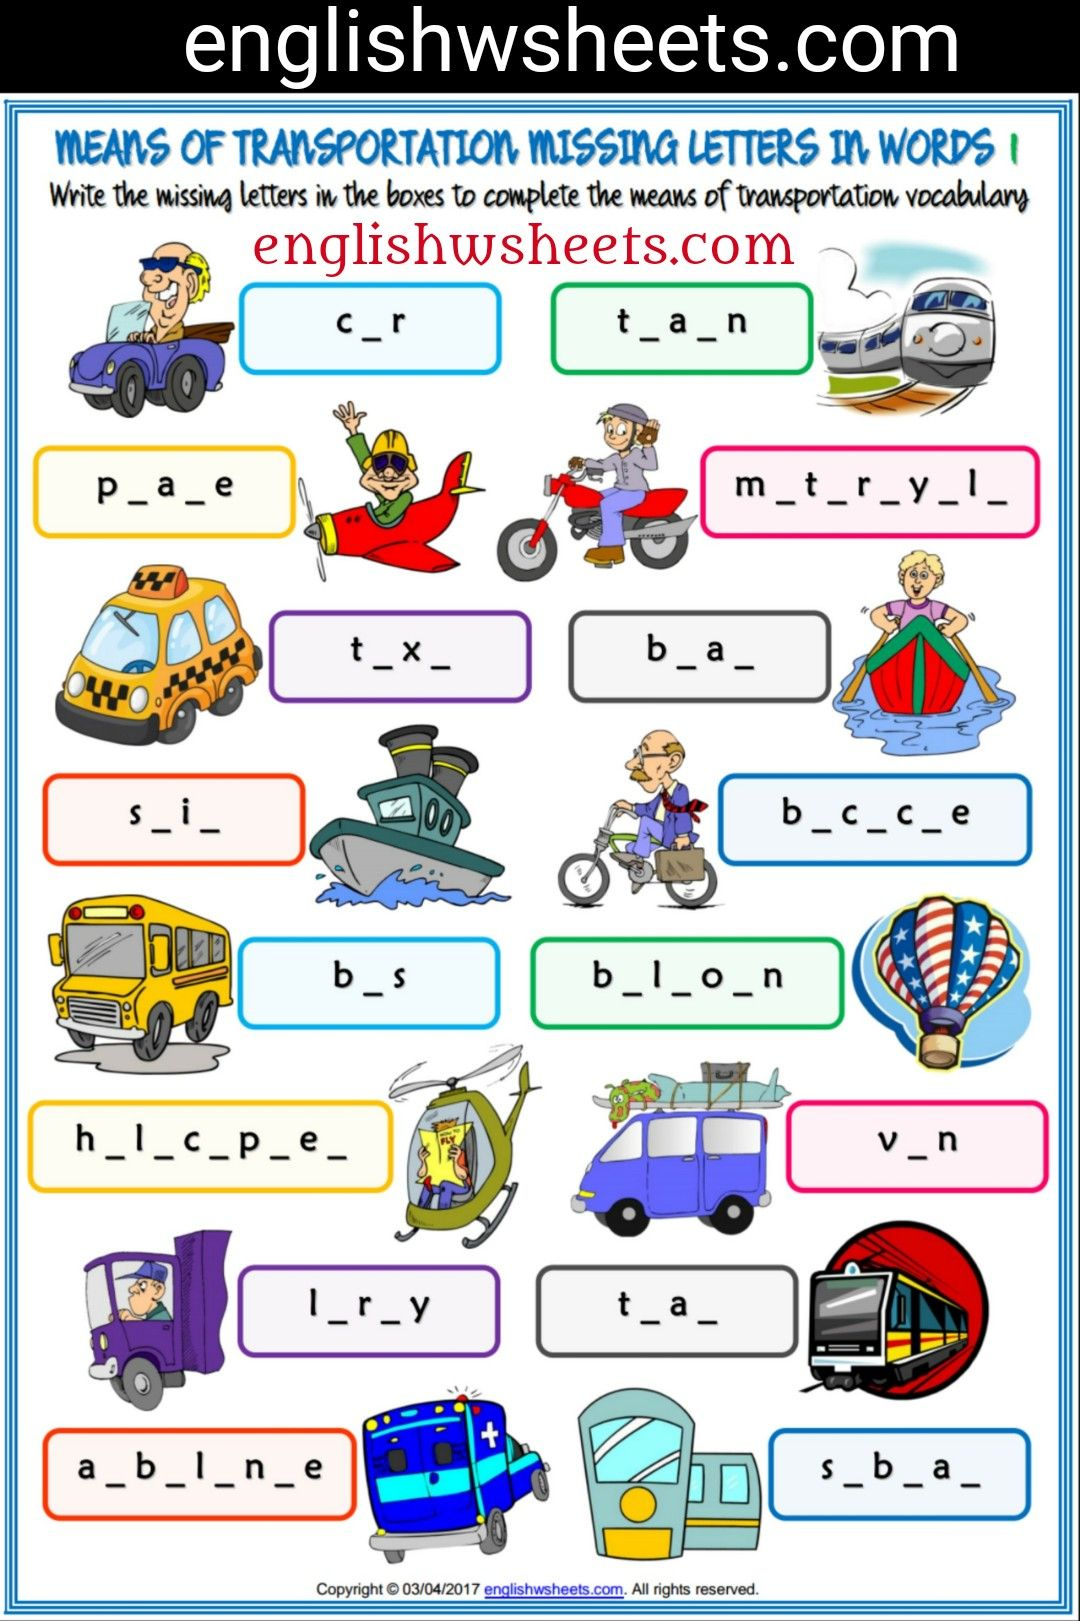 Means Of Transportation Esl Printable Missing Letters In Words Worksheet For Kids Means